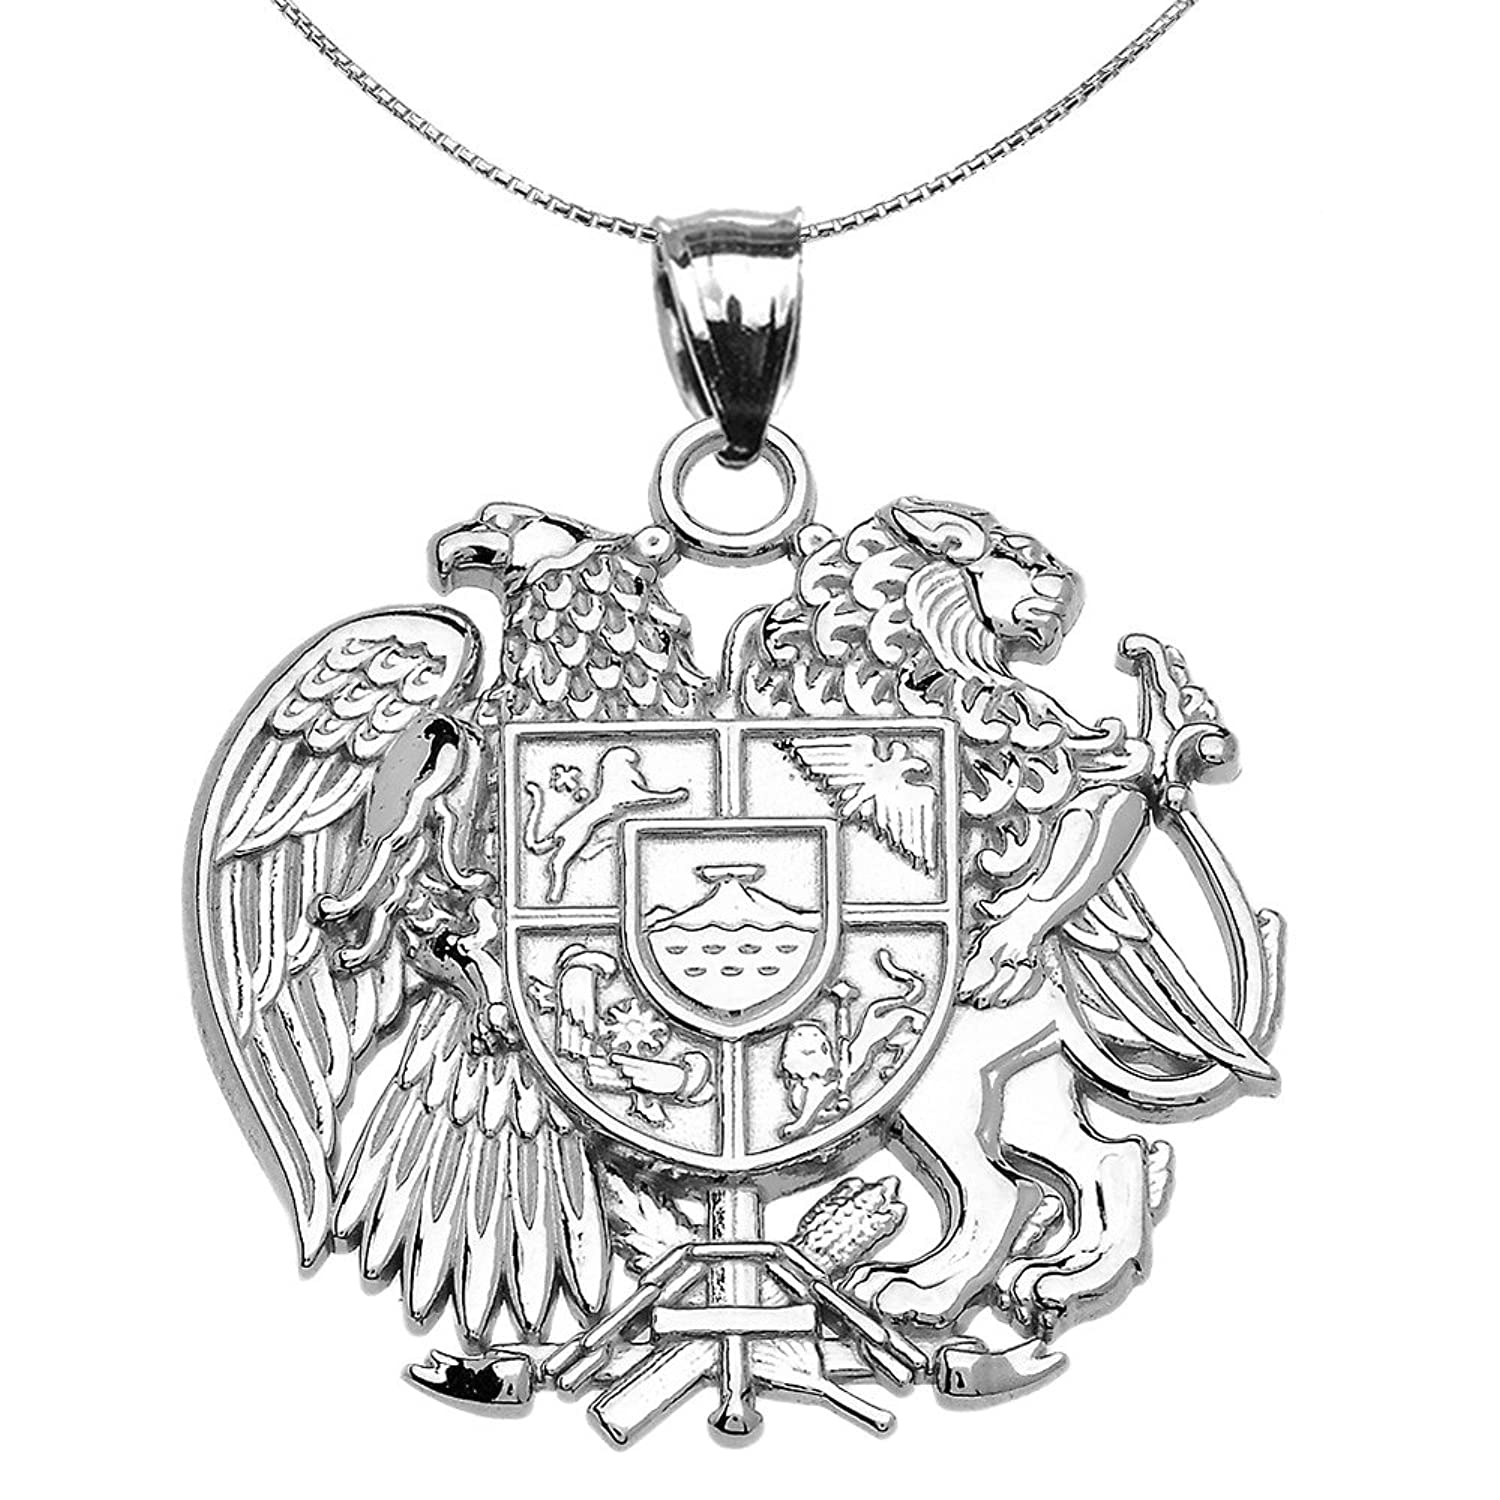 10 KホワイトゴールドArmenian National Coat of Arms Eagle and Lionペンダントネックレス B078BR84W1